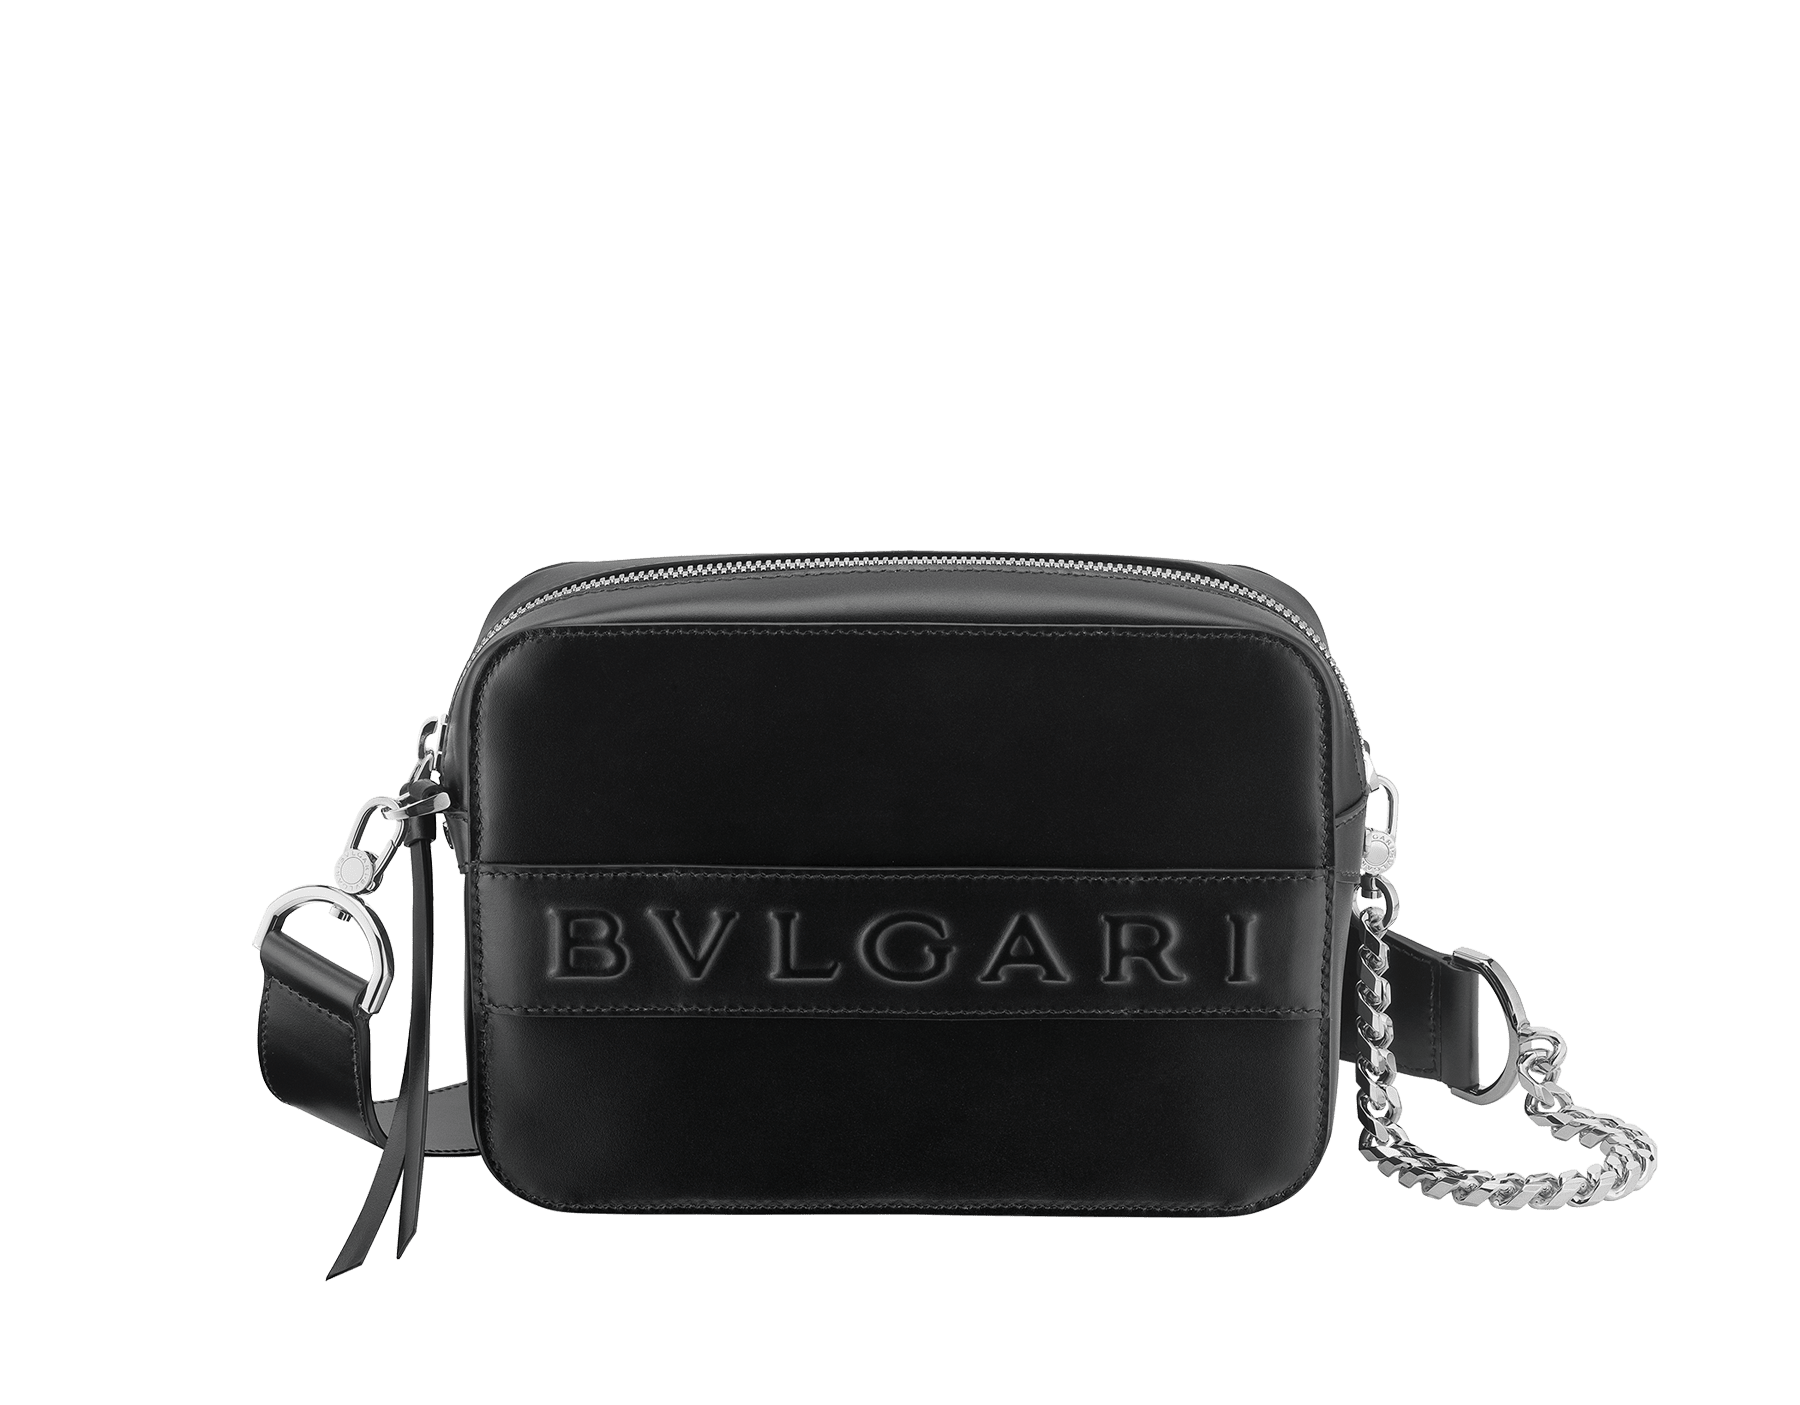 Bvlgari Logo Bag Black